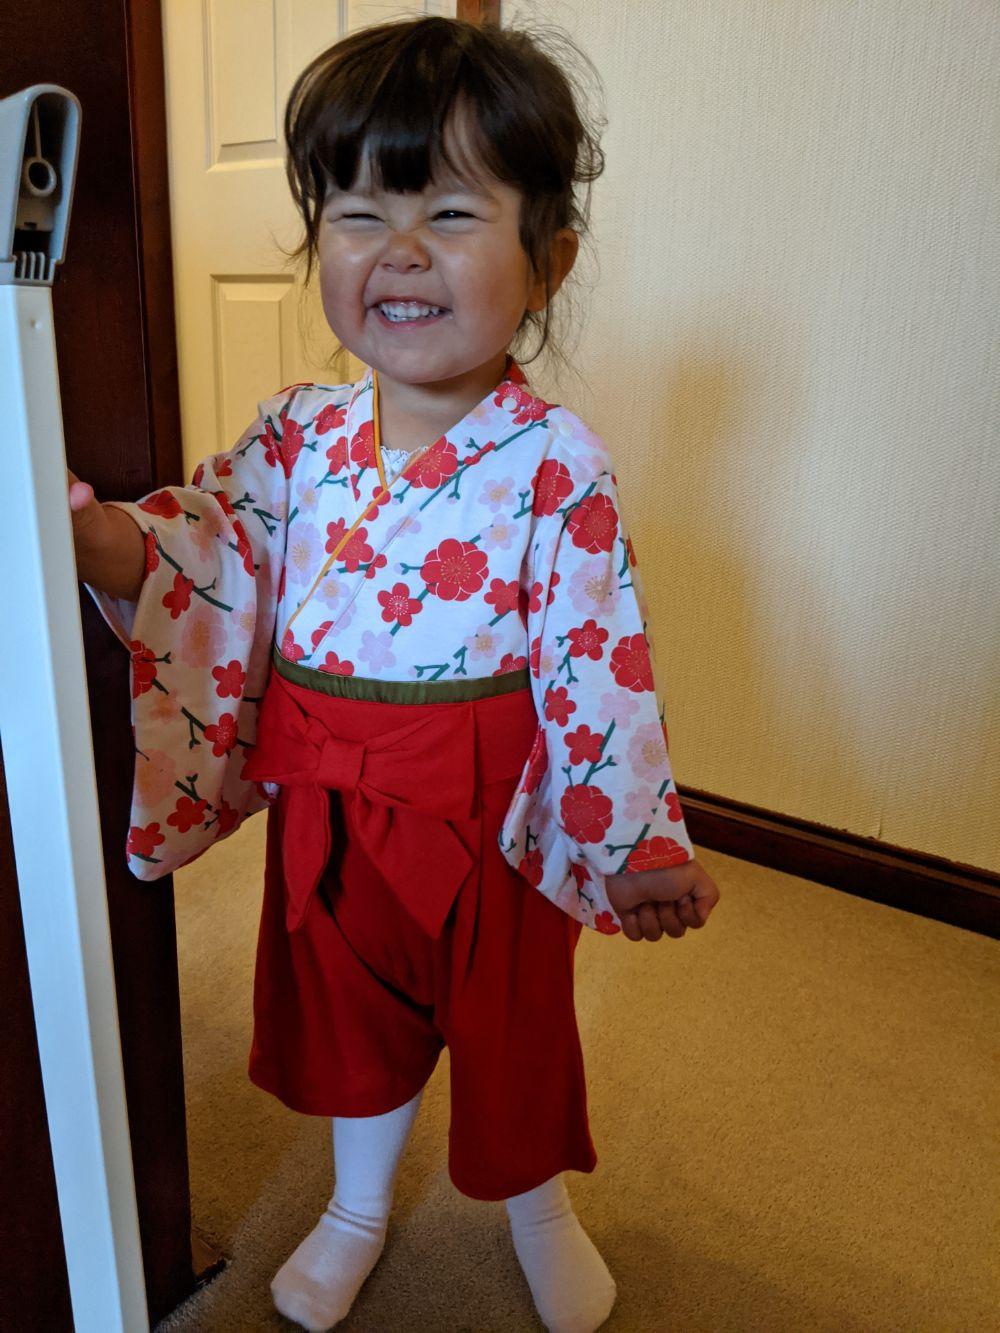 Photo of a young girl in a furisode, red on bottom, white with red flowers on top, sporting a cheeky grin